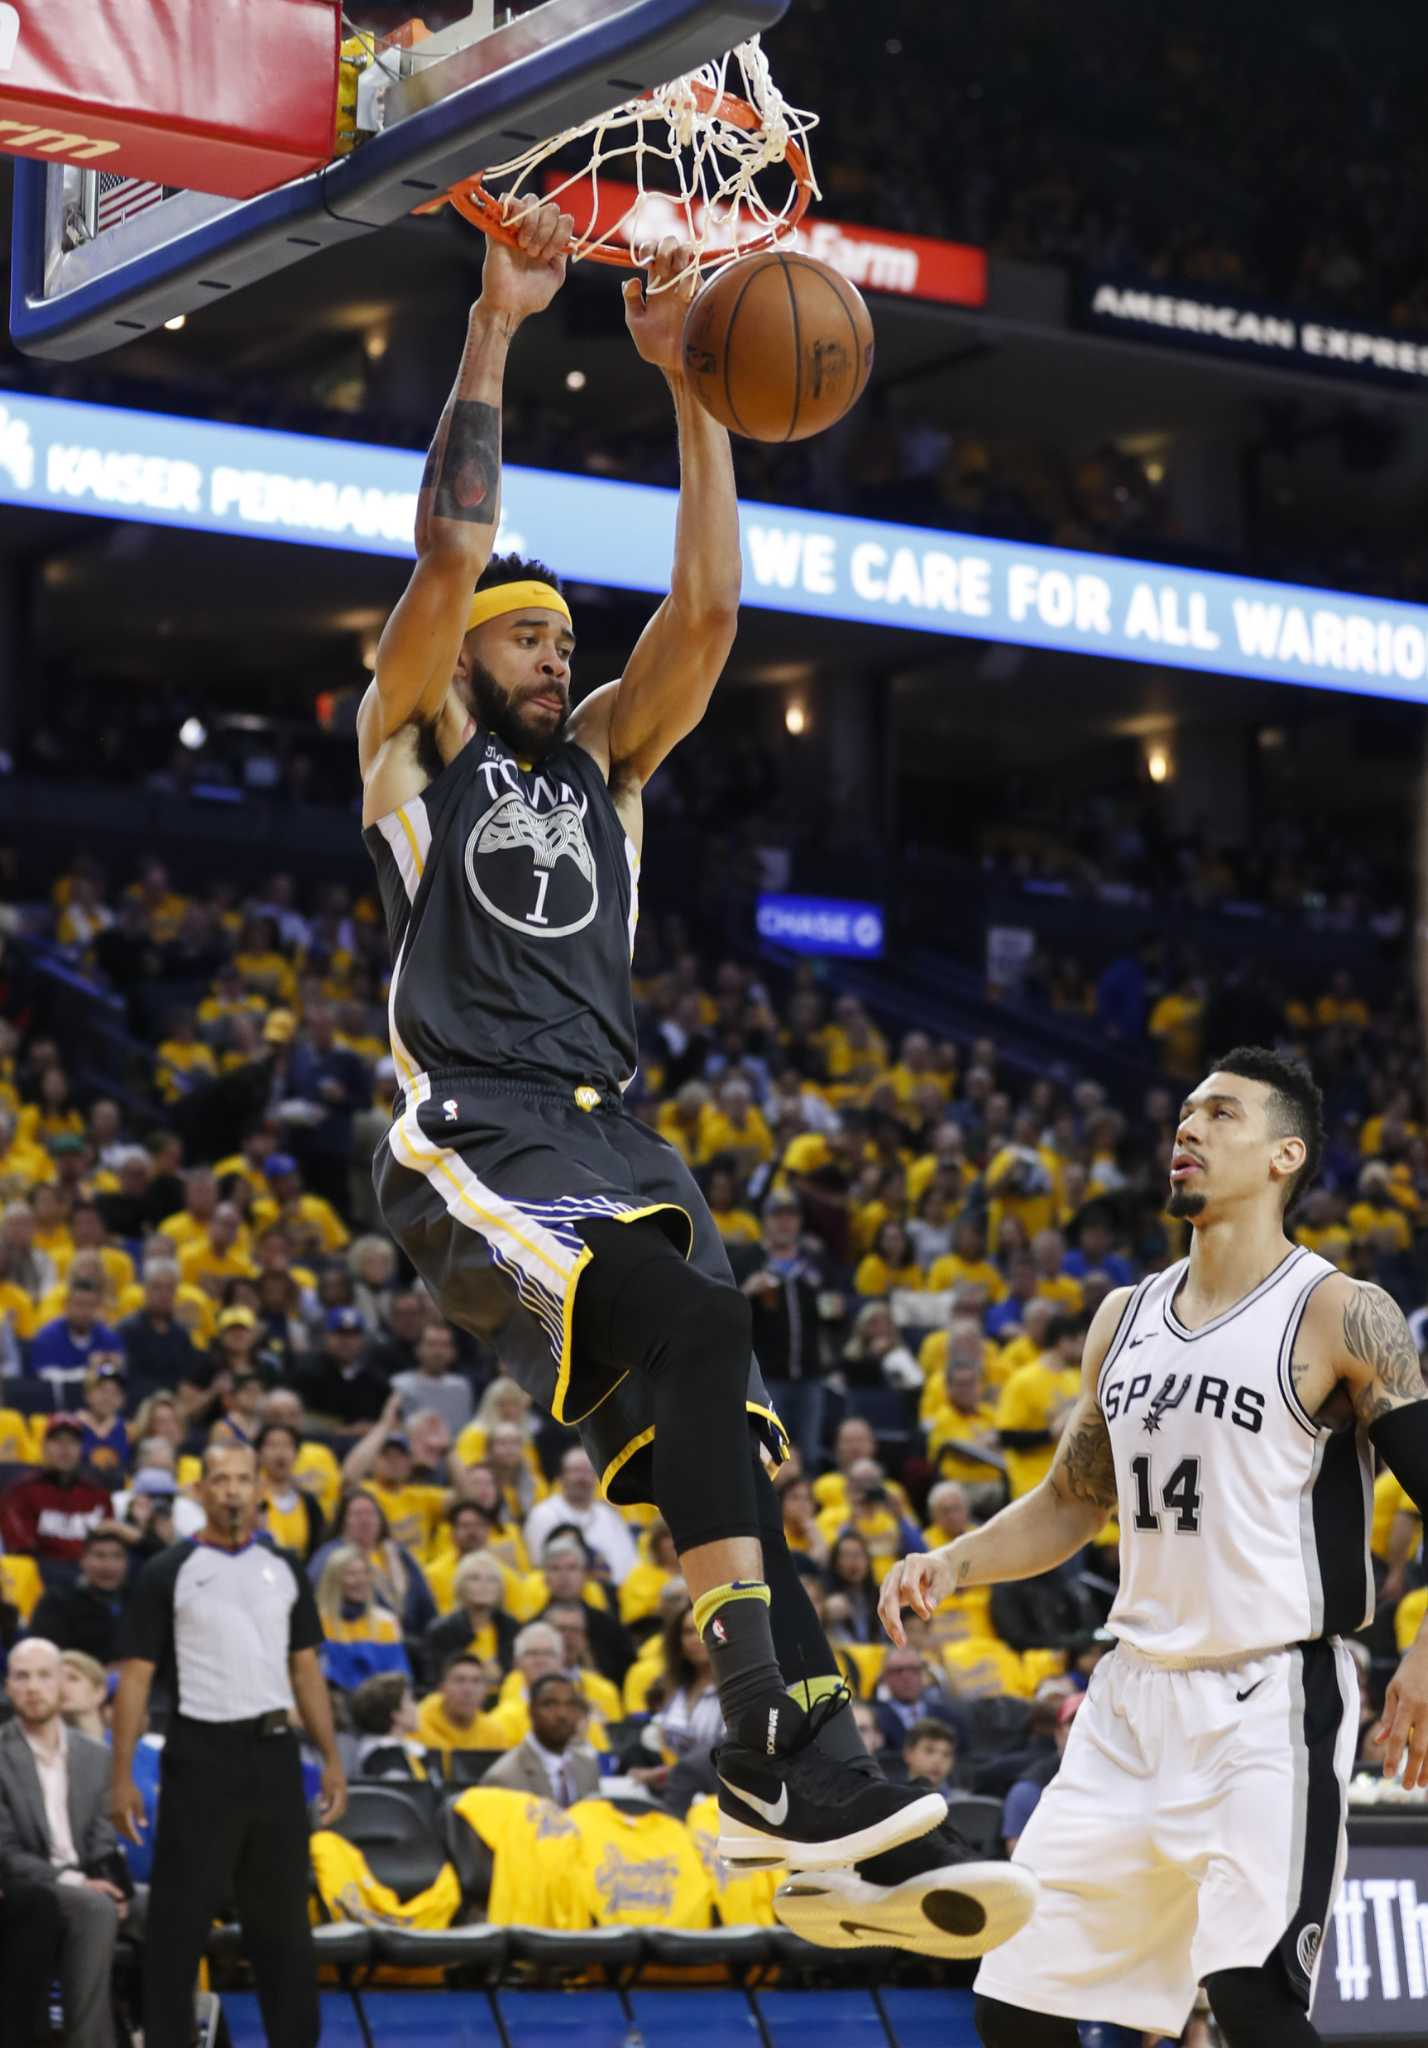 d0d7f0c0d6 Warriors  high-energy center Javale McGee reaches agreement with Lakers -  SFGate